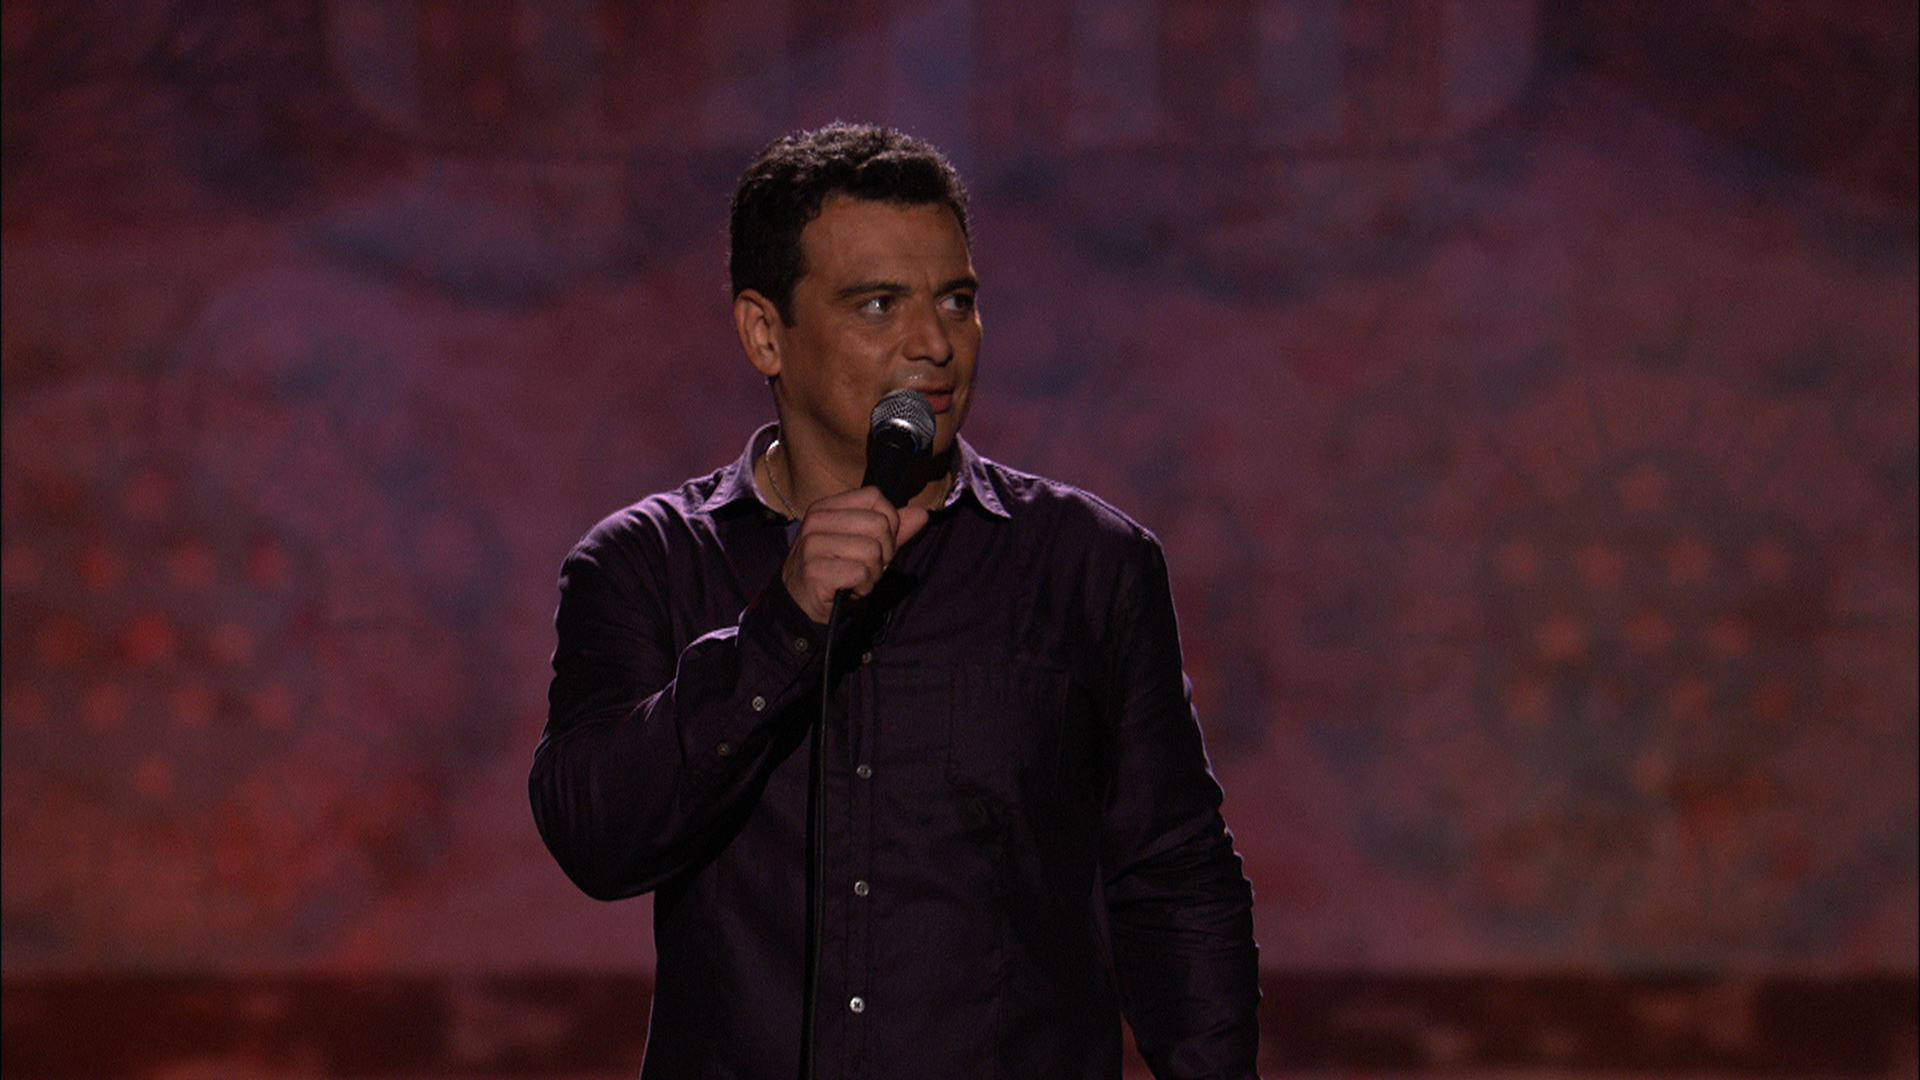 Uncensored - Carlos Mencia - We Are Pirates